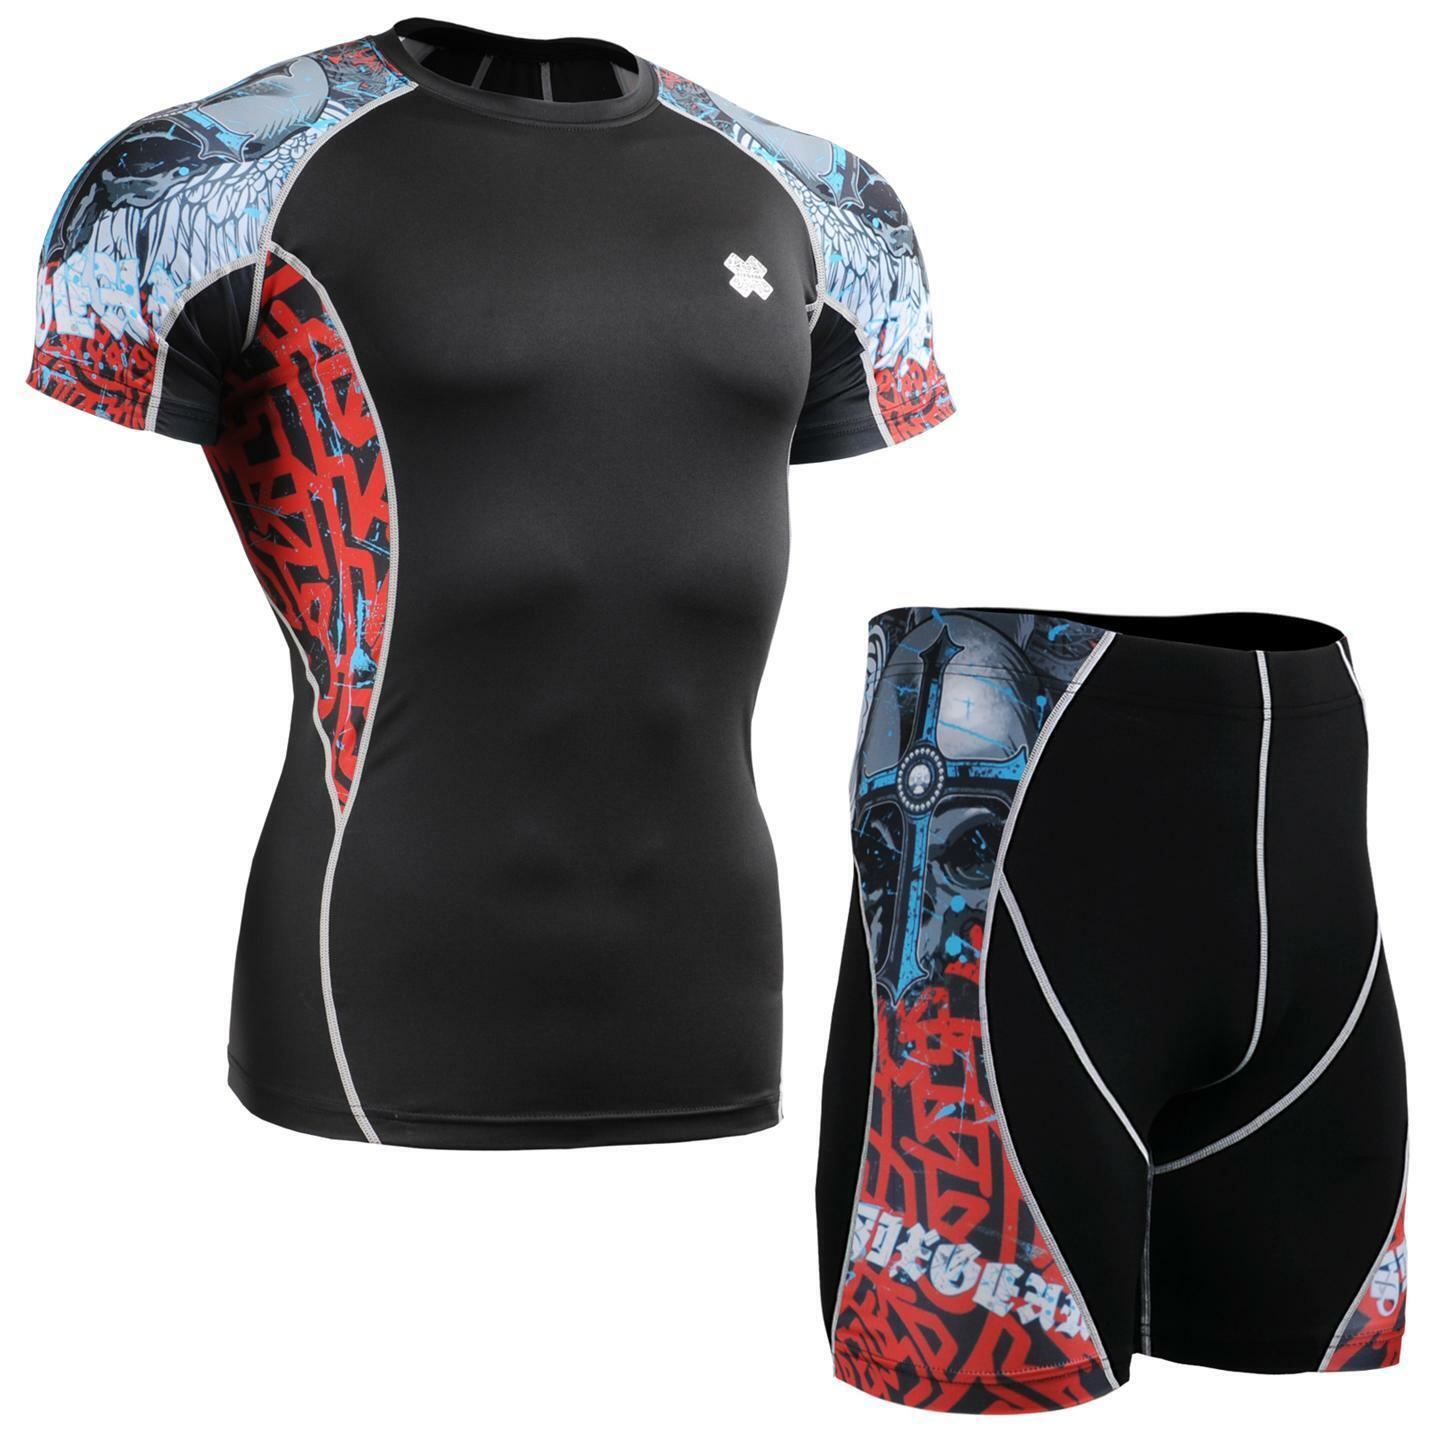 FIXGEAR C2S P2S-B73 Compression Shirt & Shorts Set Workout MMA Sportswear GYM